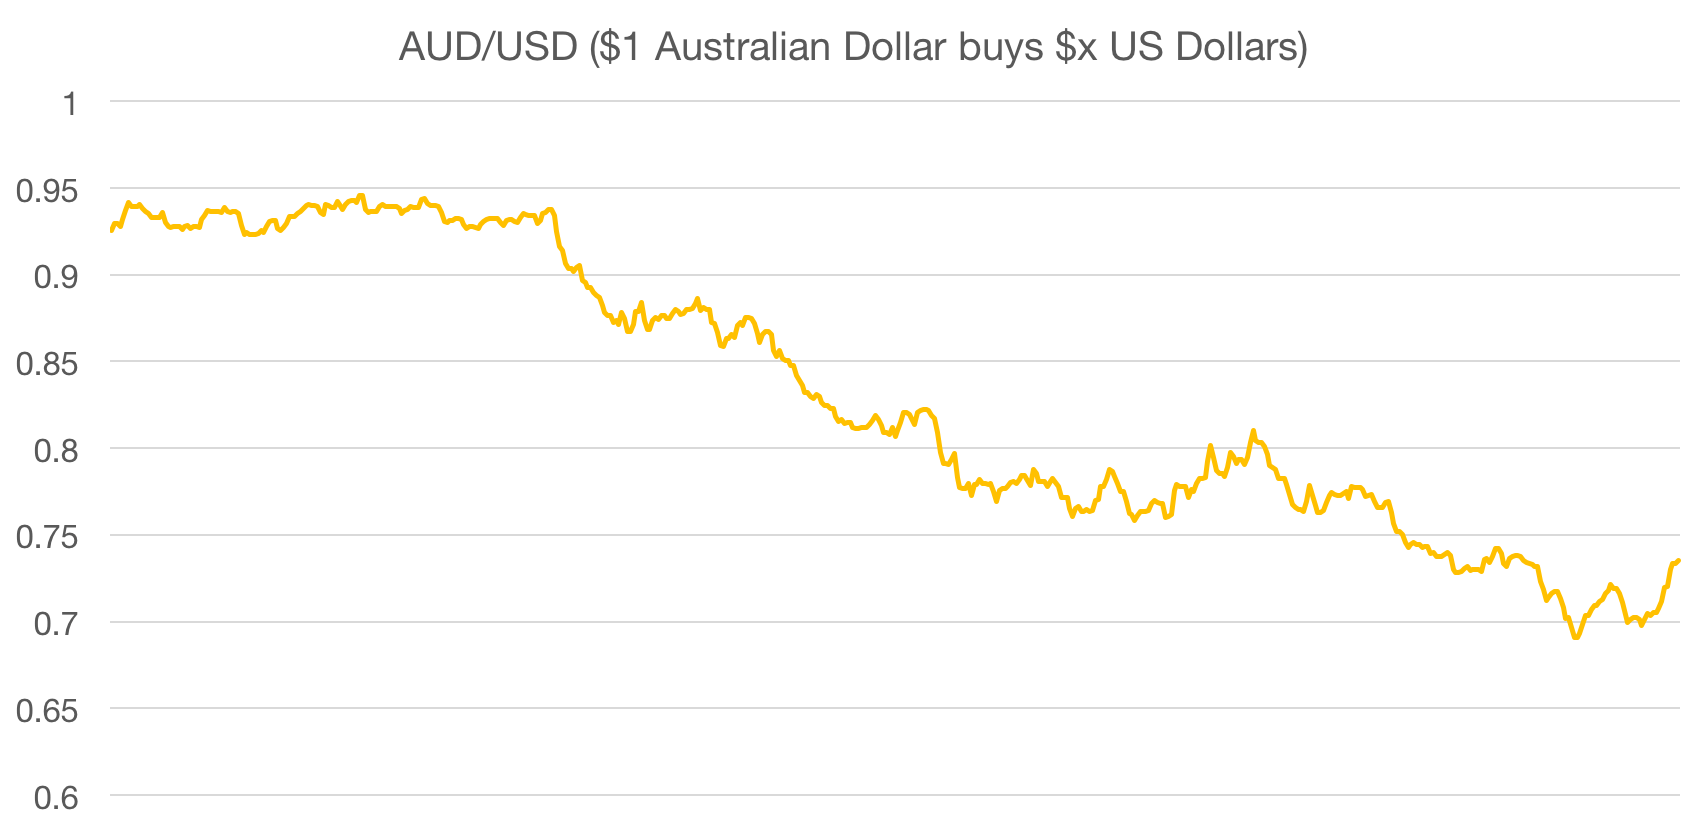 AUD/USD from 4 April 2014 (when App Store prices were last adjusted in Australia) to 13 October 2015.